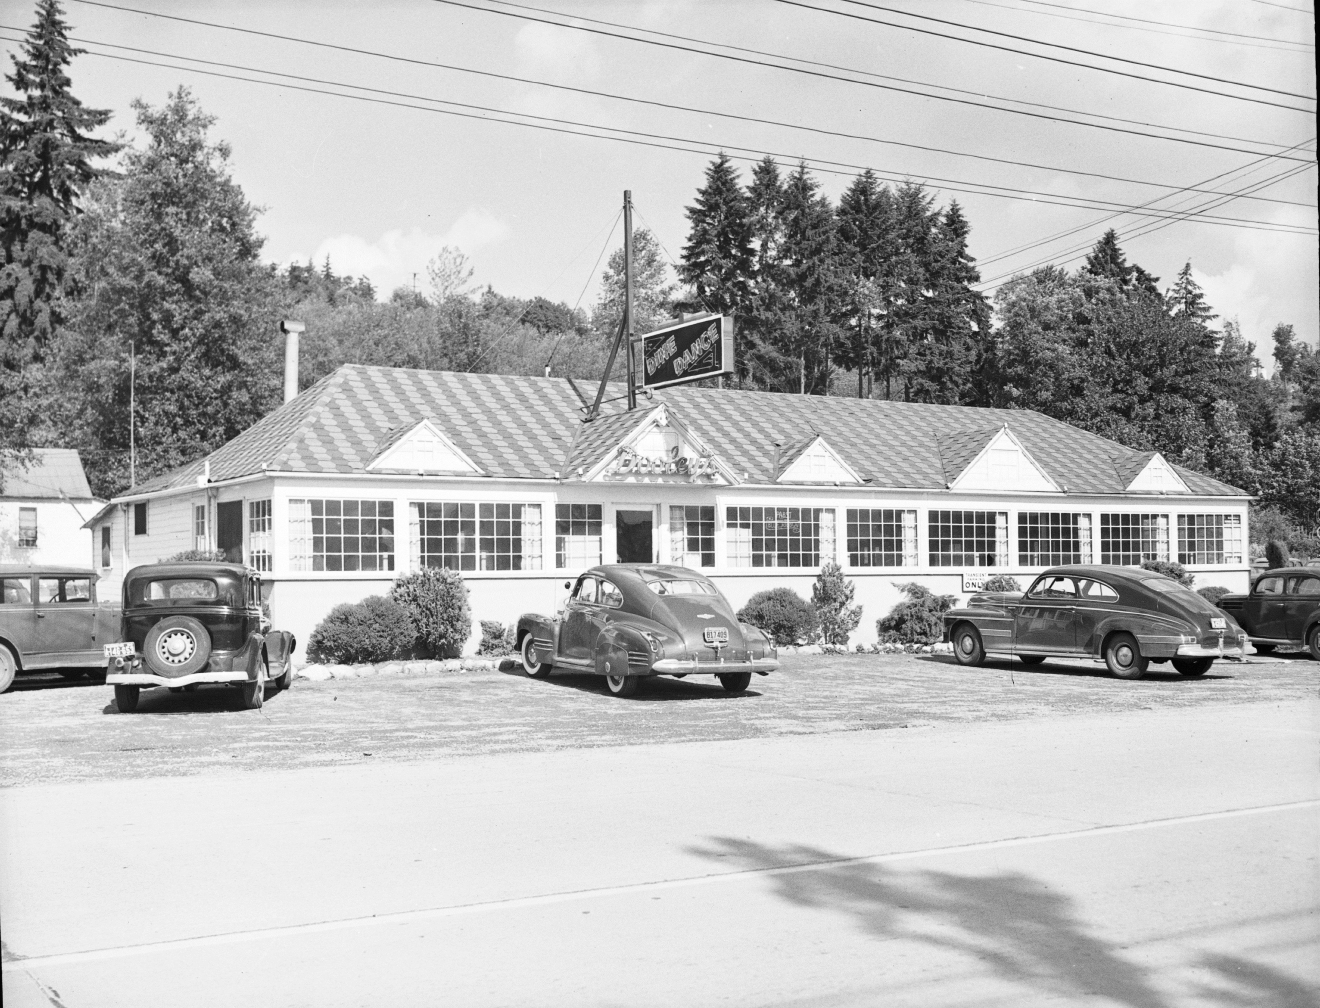 Dooley's was located at 7414 Sand Point Way NE and is currently home to 60th Street Bakery. (Image: Seattle Municipal Archives / flickr).